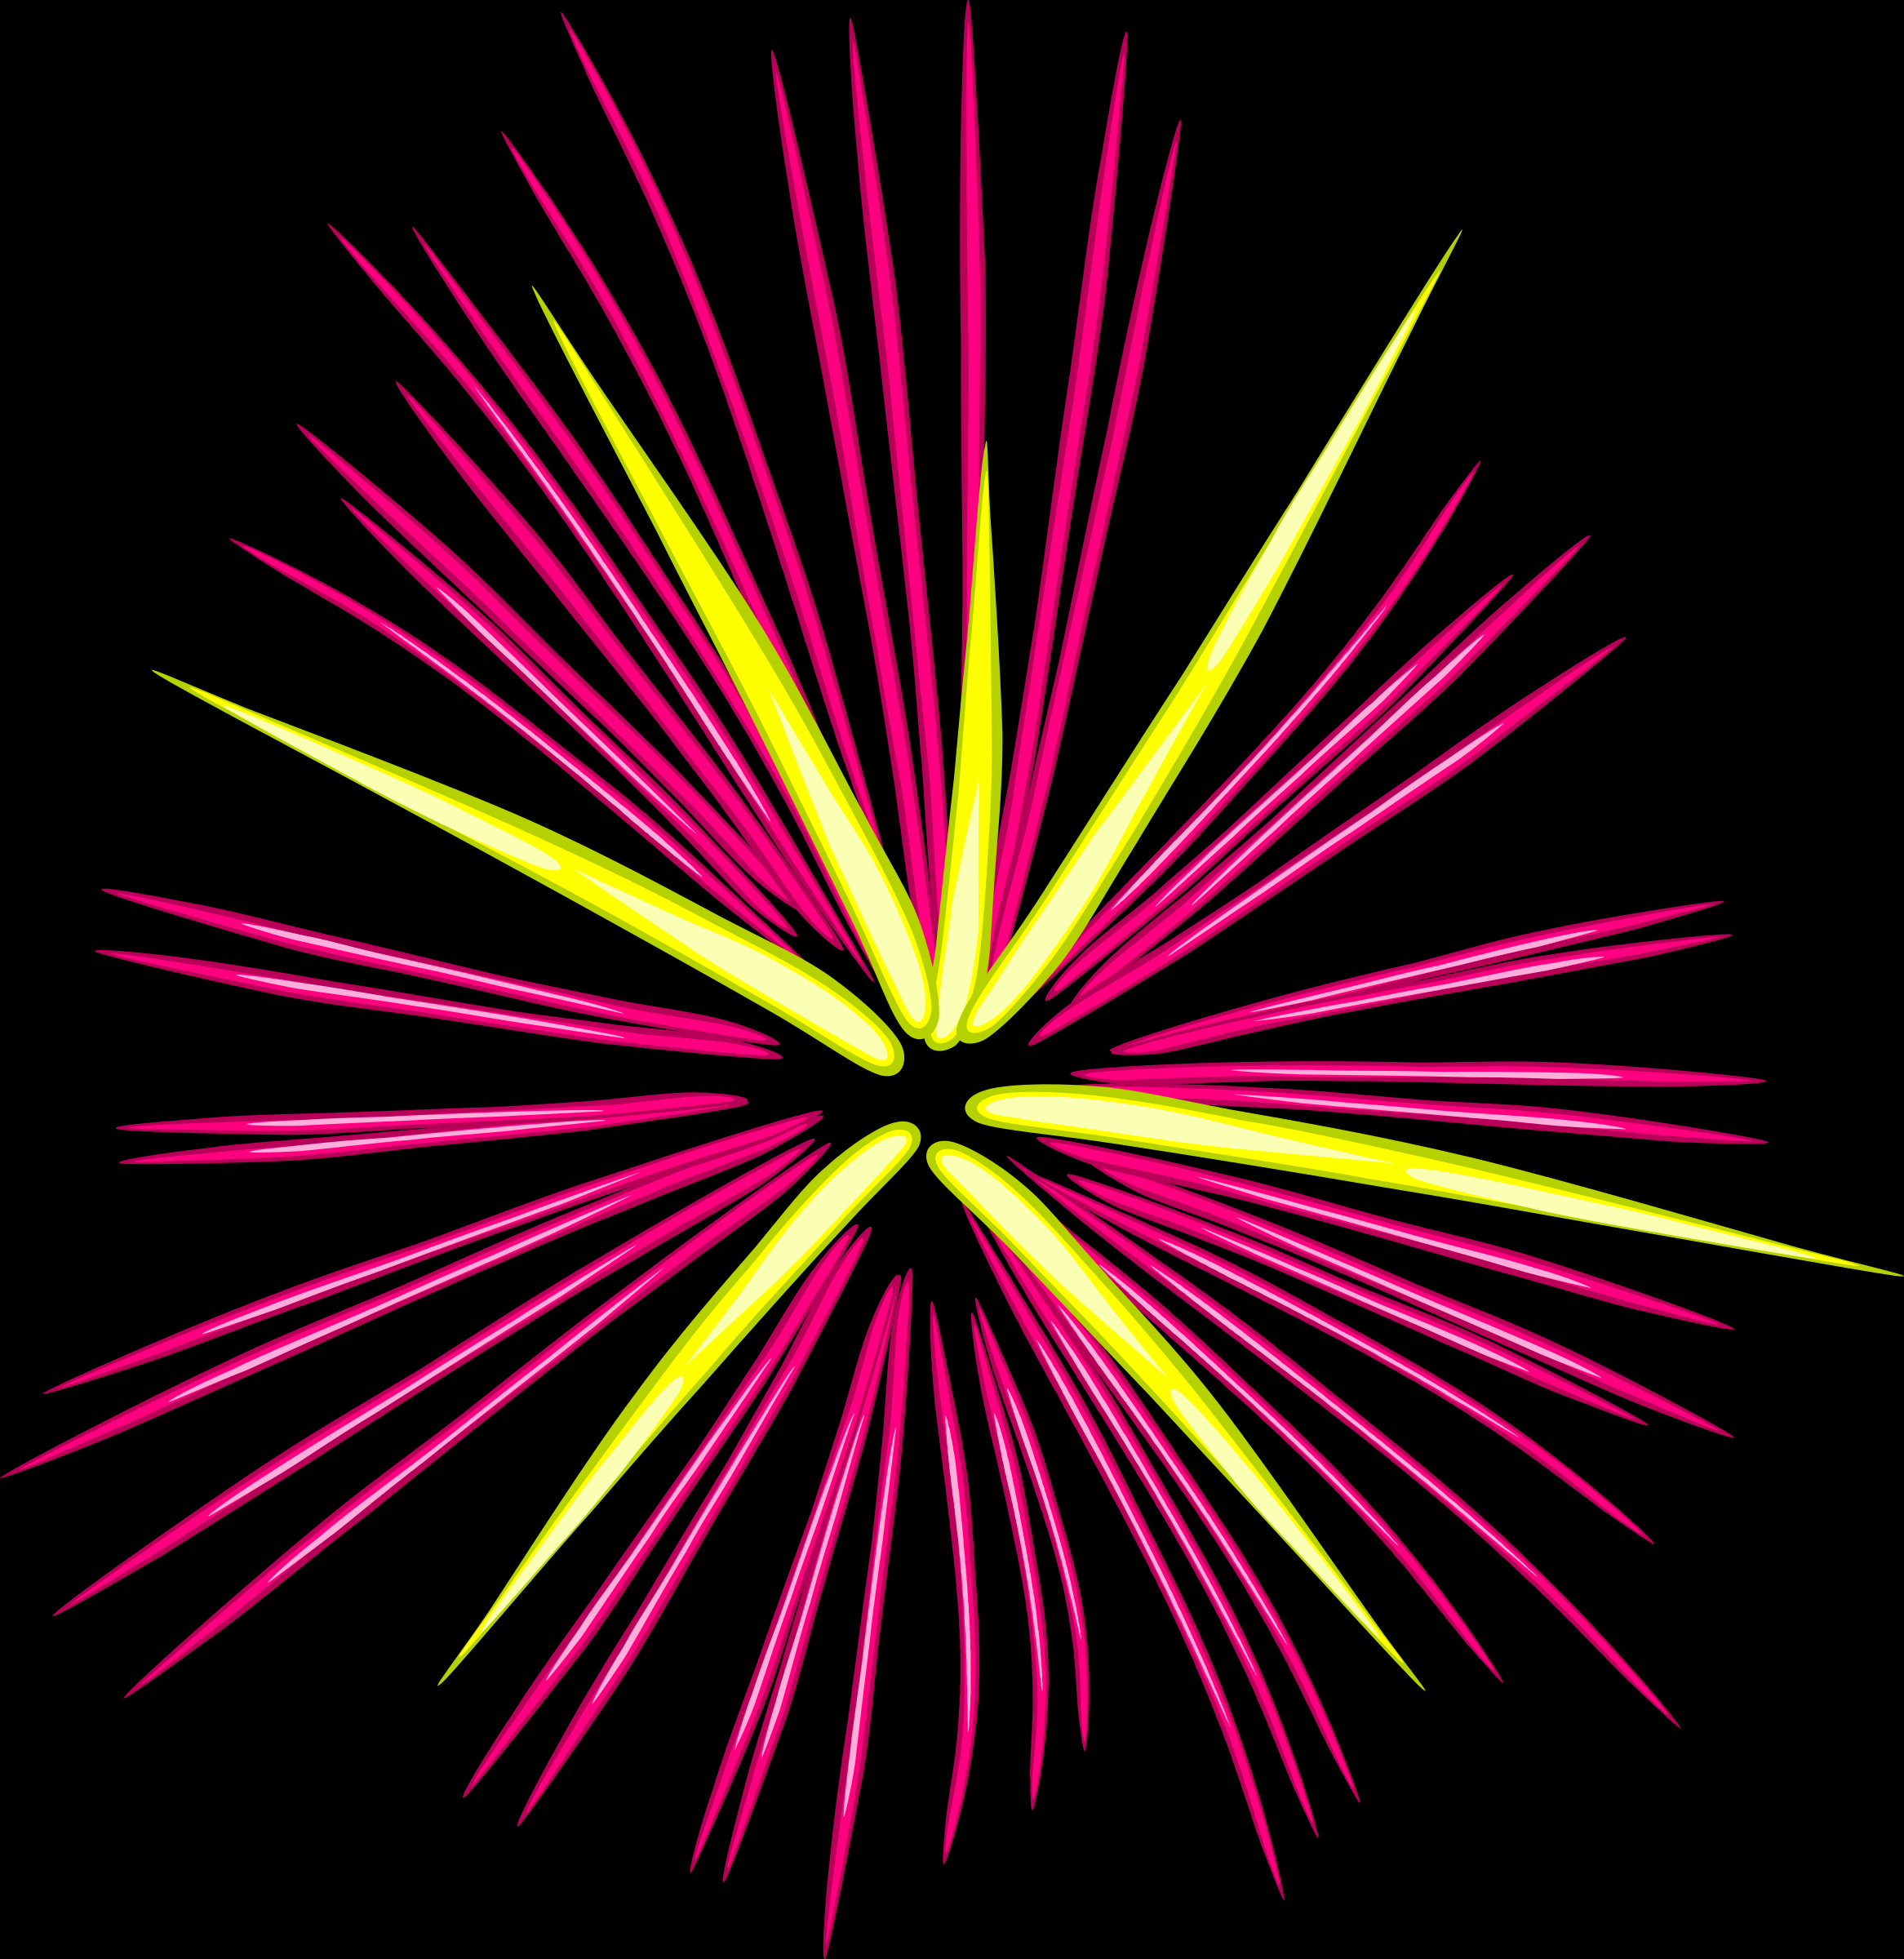 Pink Fireworks by eady